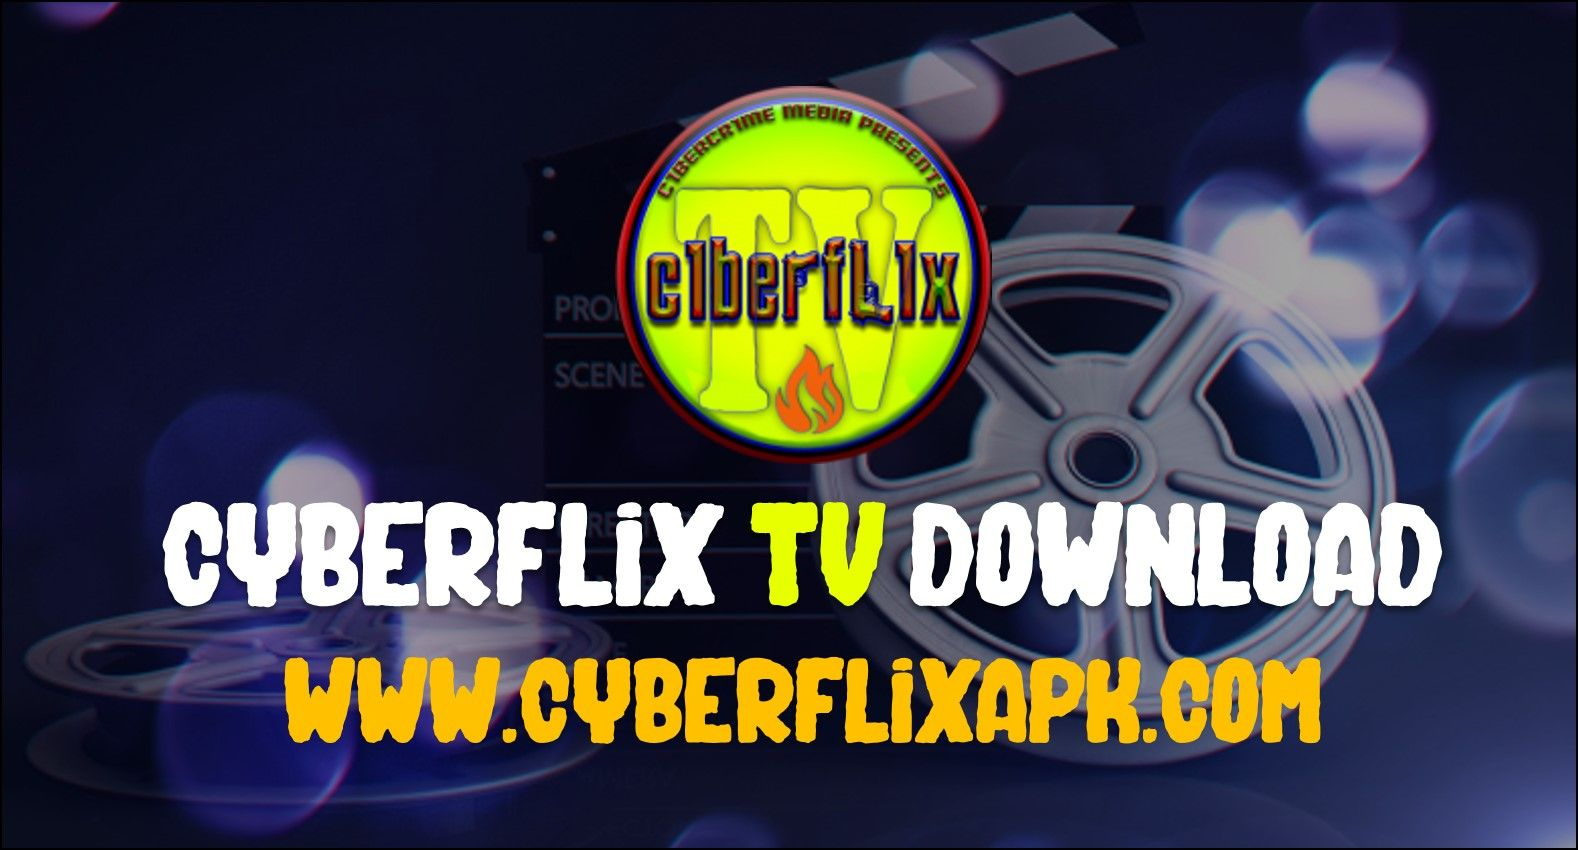 Download Cyberflix Tv Apk V3 0 6 For All The Android Fire Tv Fire Stick Pc With Direct Download Links The Fire Tv Latest Movie Releases Movies And Tv Shows